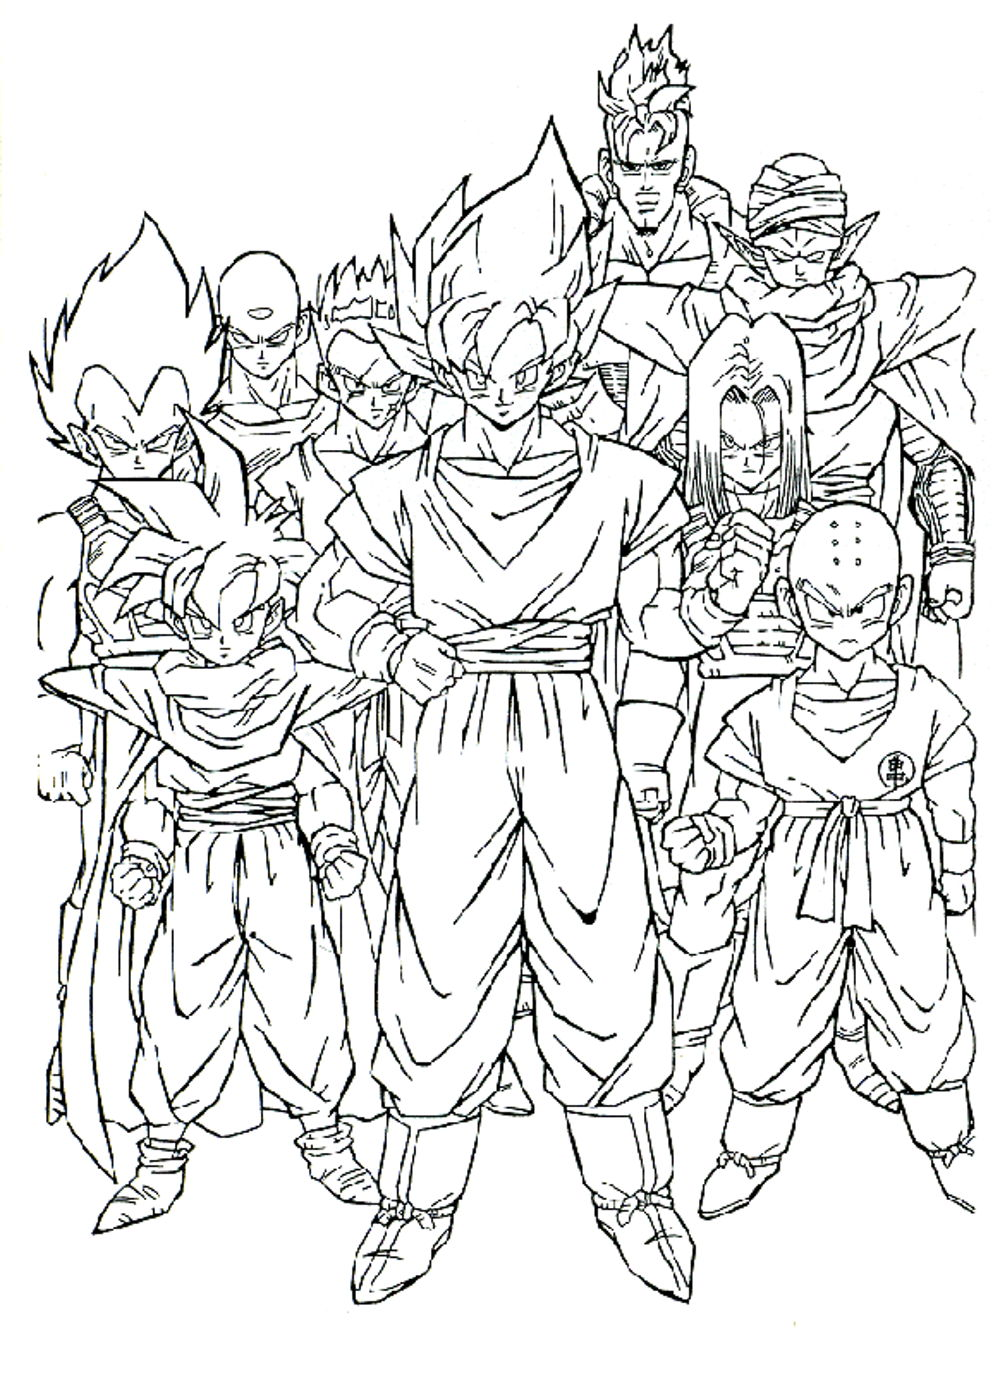 dragon ball z coloring pages printable - Coloring Page Dragon